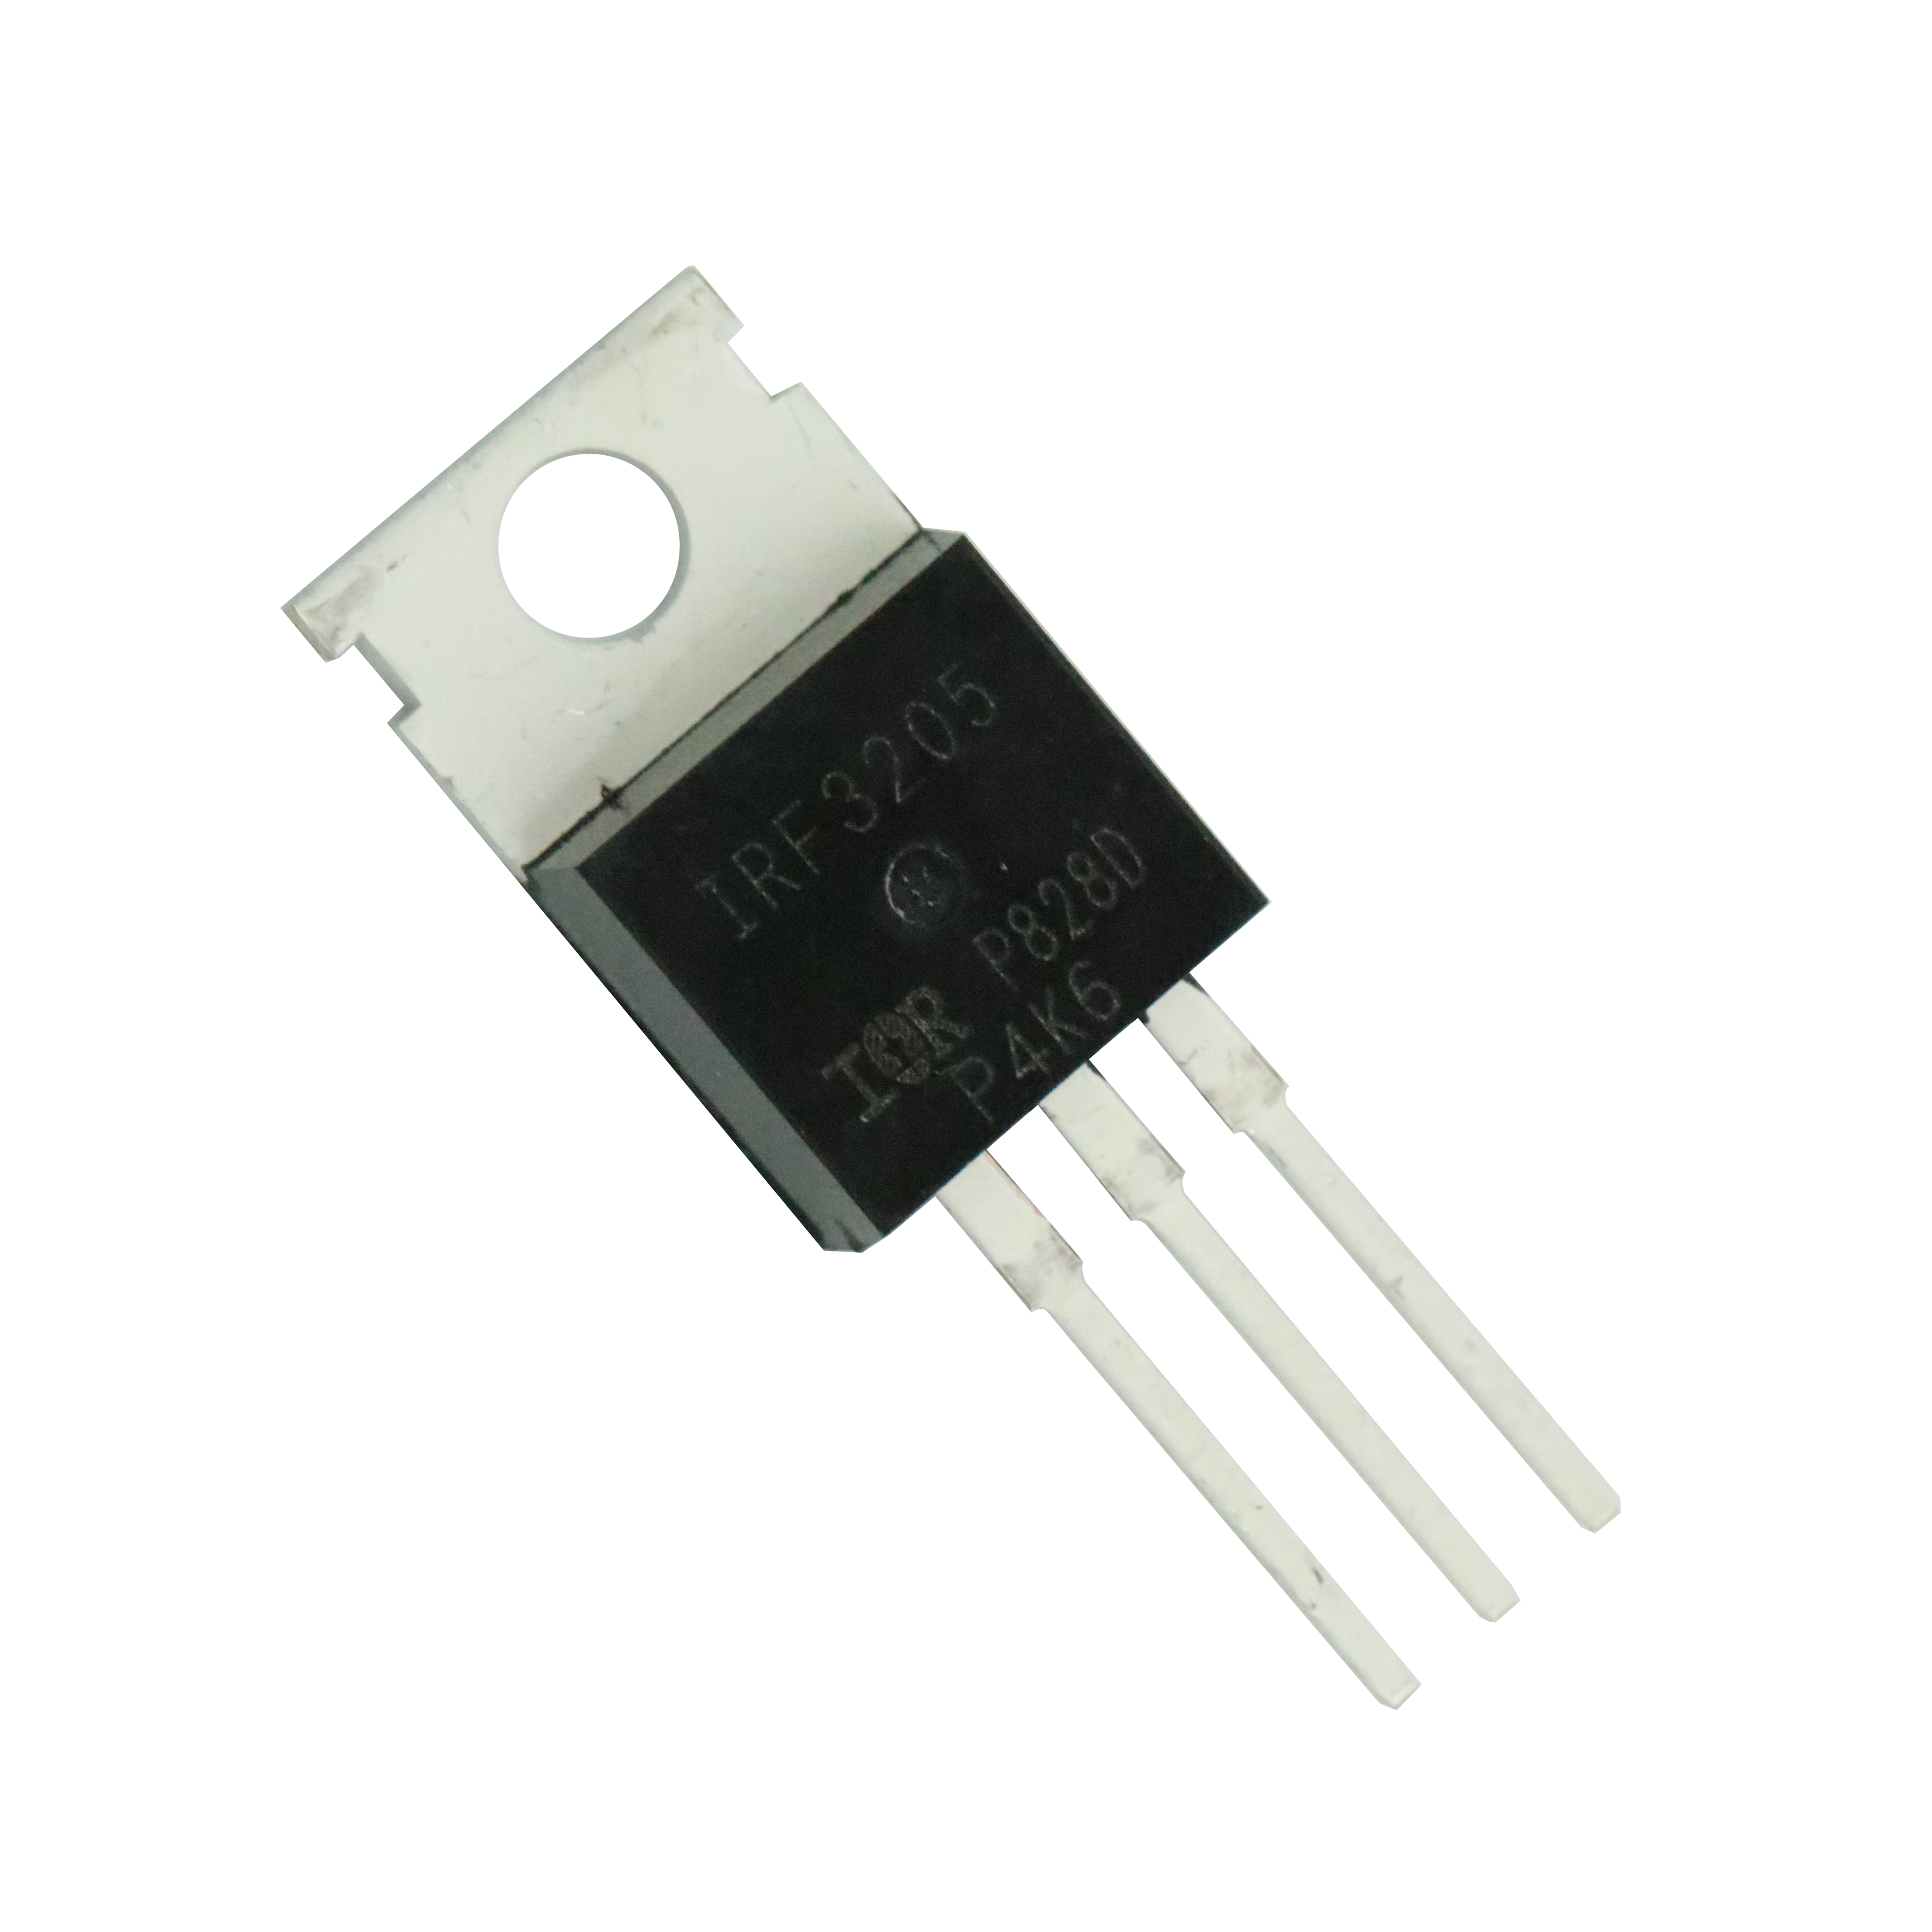 20pcs 55 V 110 A IRF3205 TO-220 IRF 3205 Power MOSFET